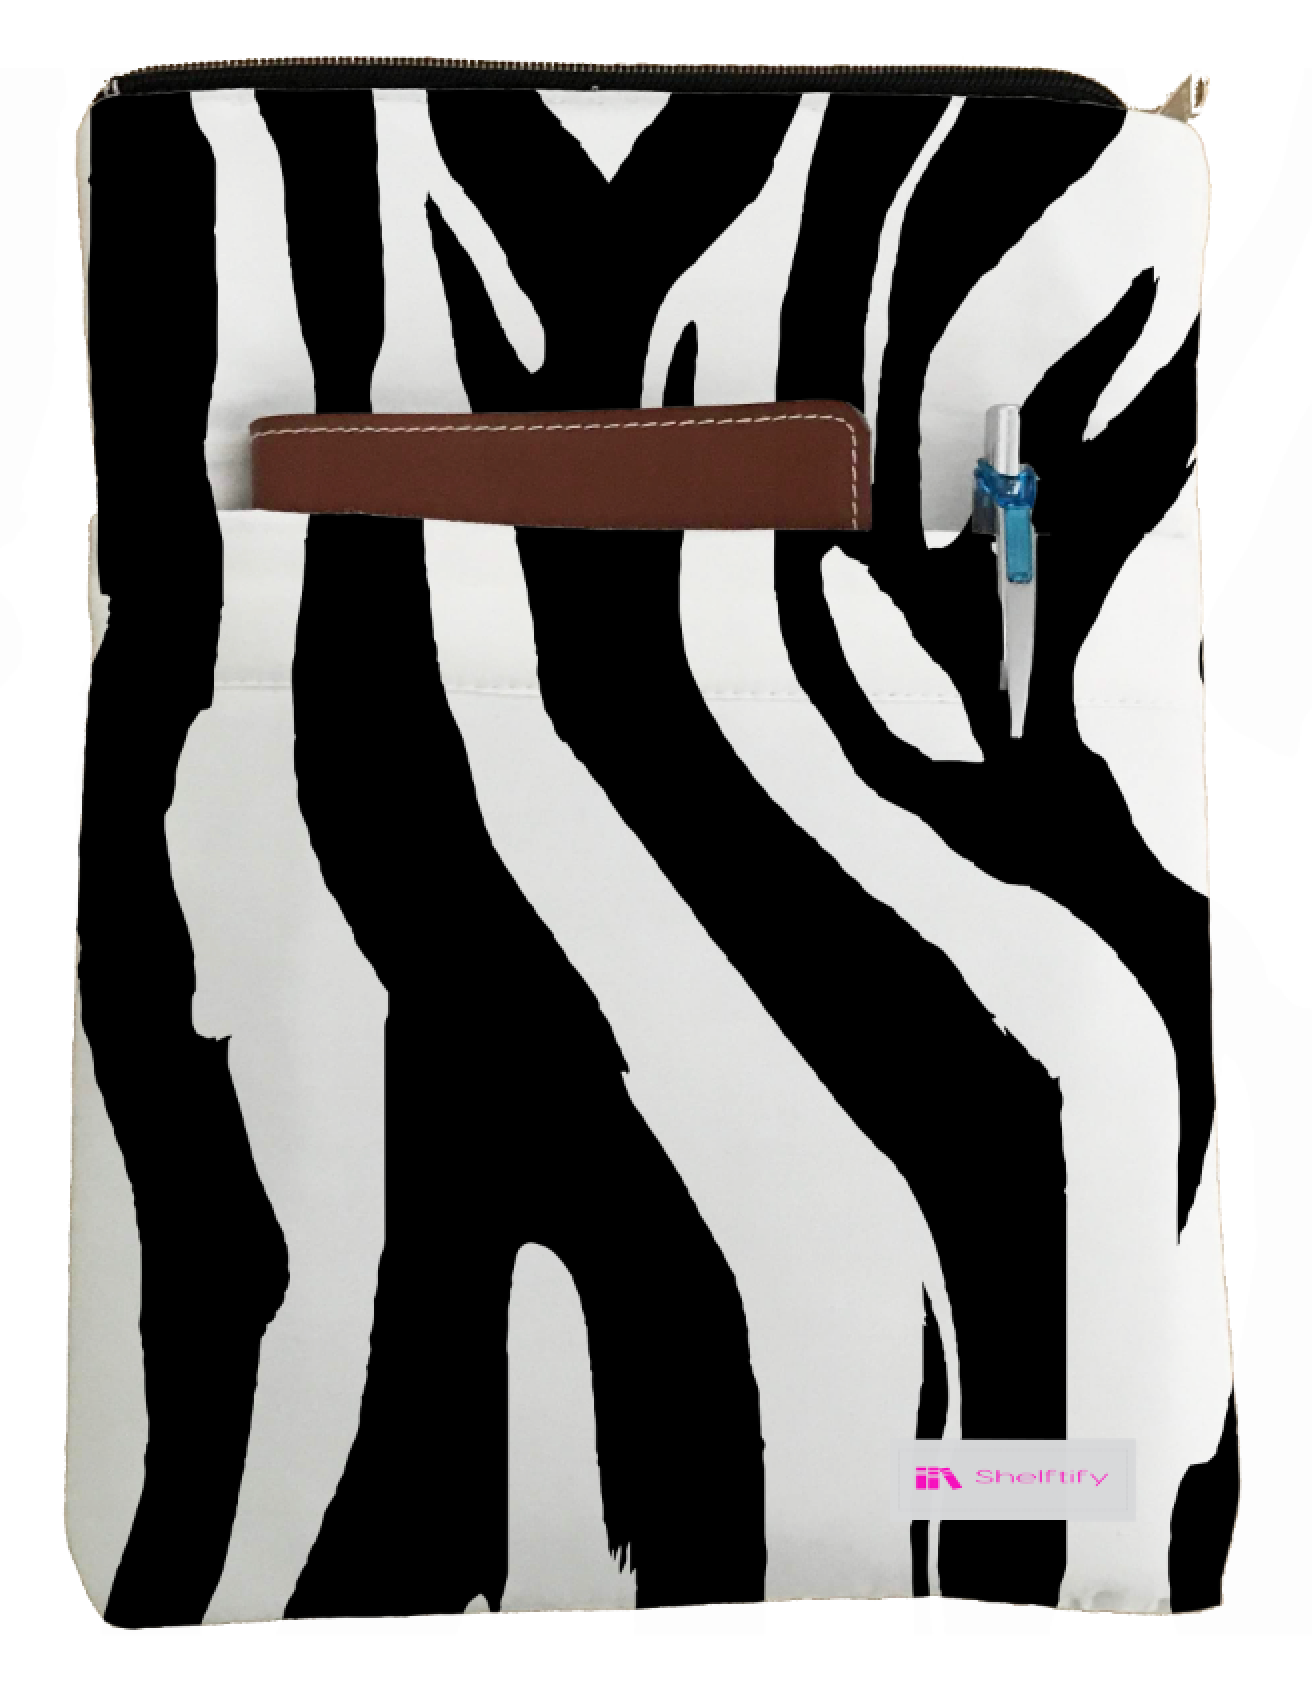 Zebra print Book Sleeve - Book Cover For Hardcover and Paperback - Book Lover Gift - Notebooks and Pens Not Included